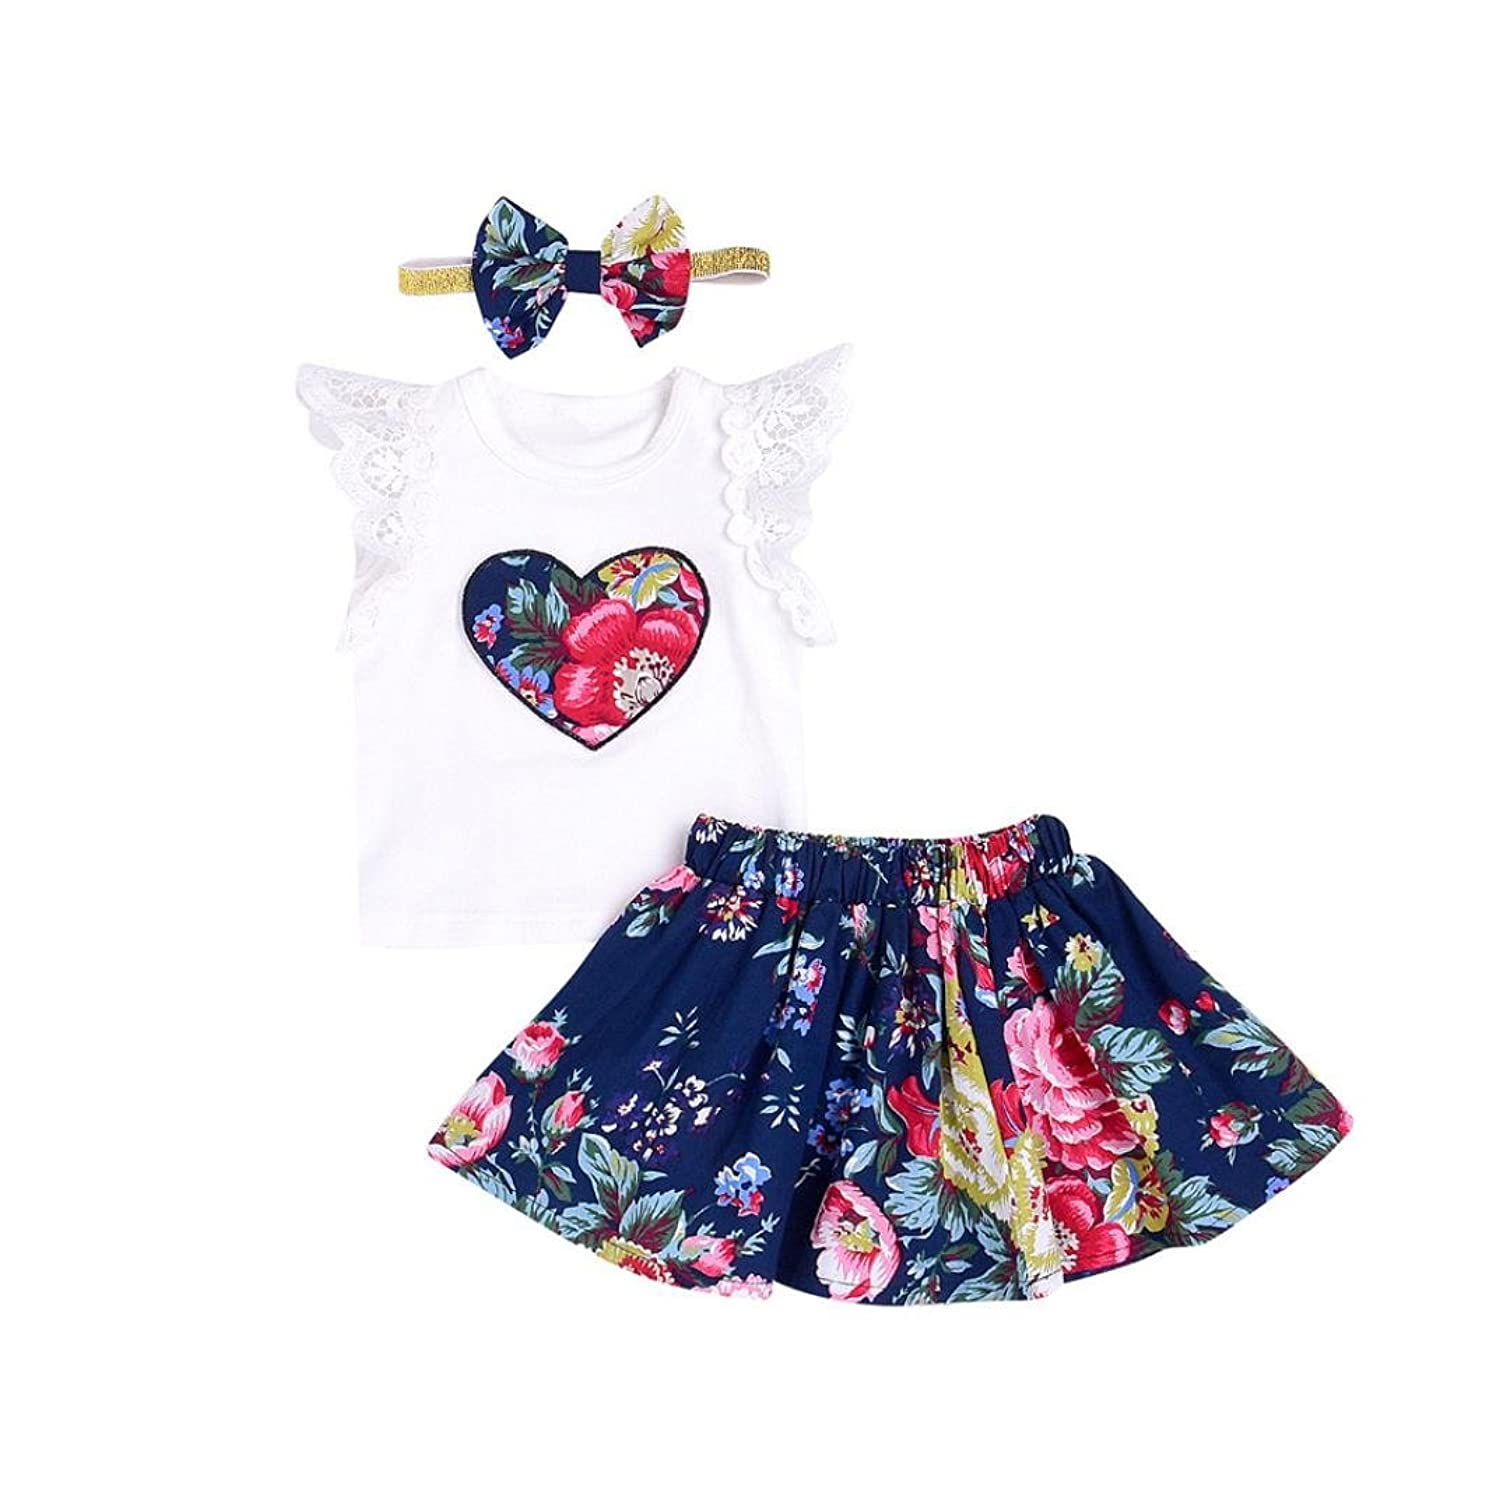 eb7346bd9 Top 10 wholesale Best Place To Buy Cute Rompers - Chinabrands.com